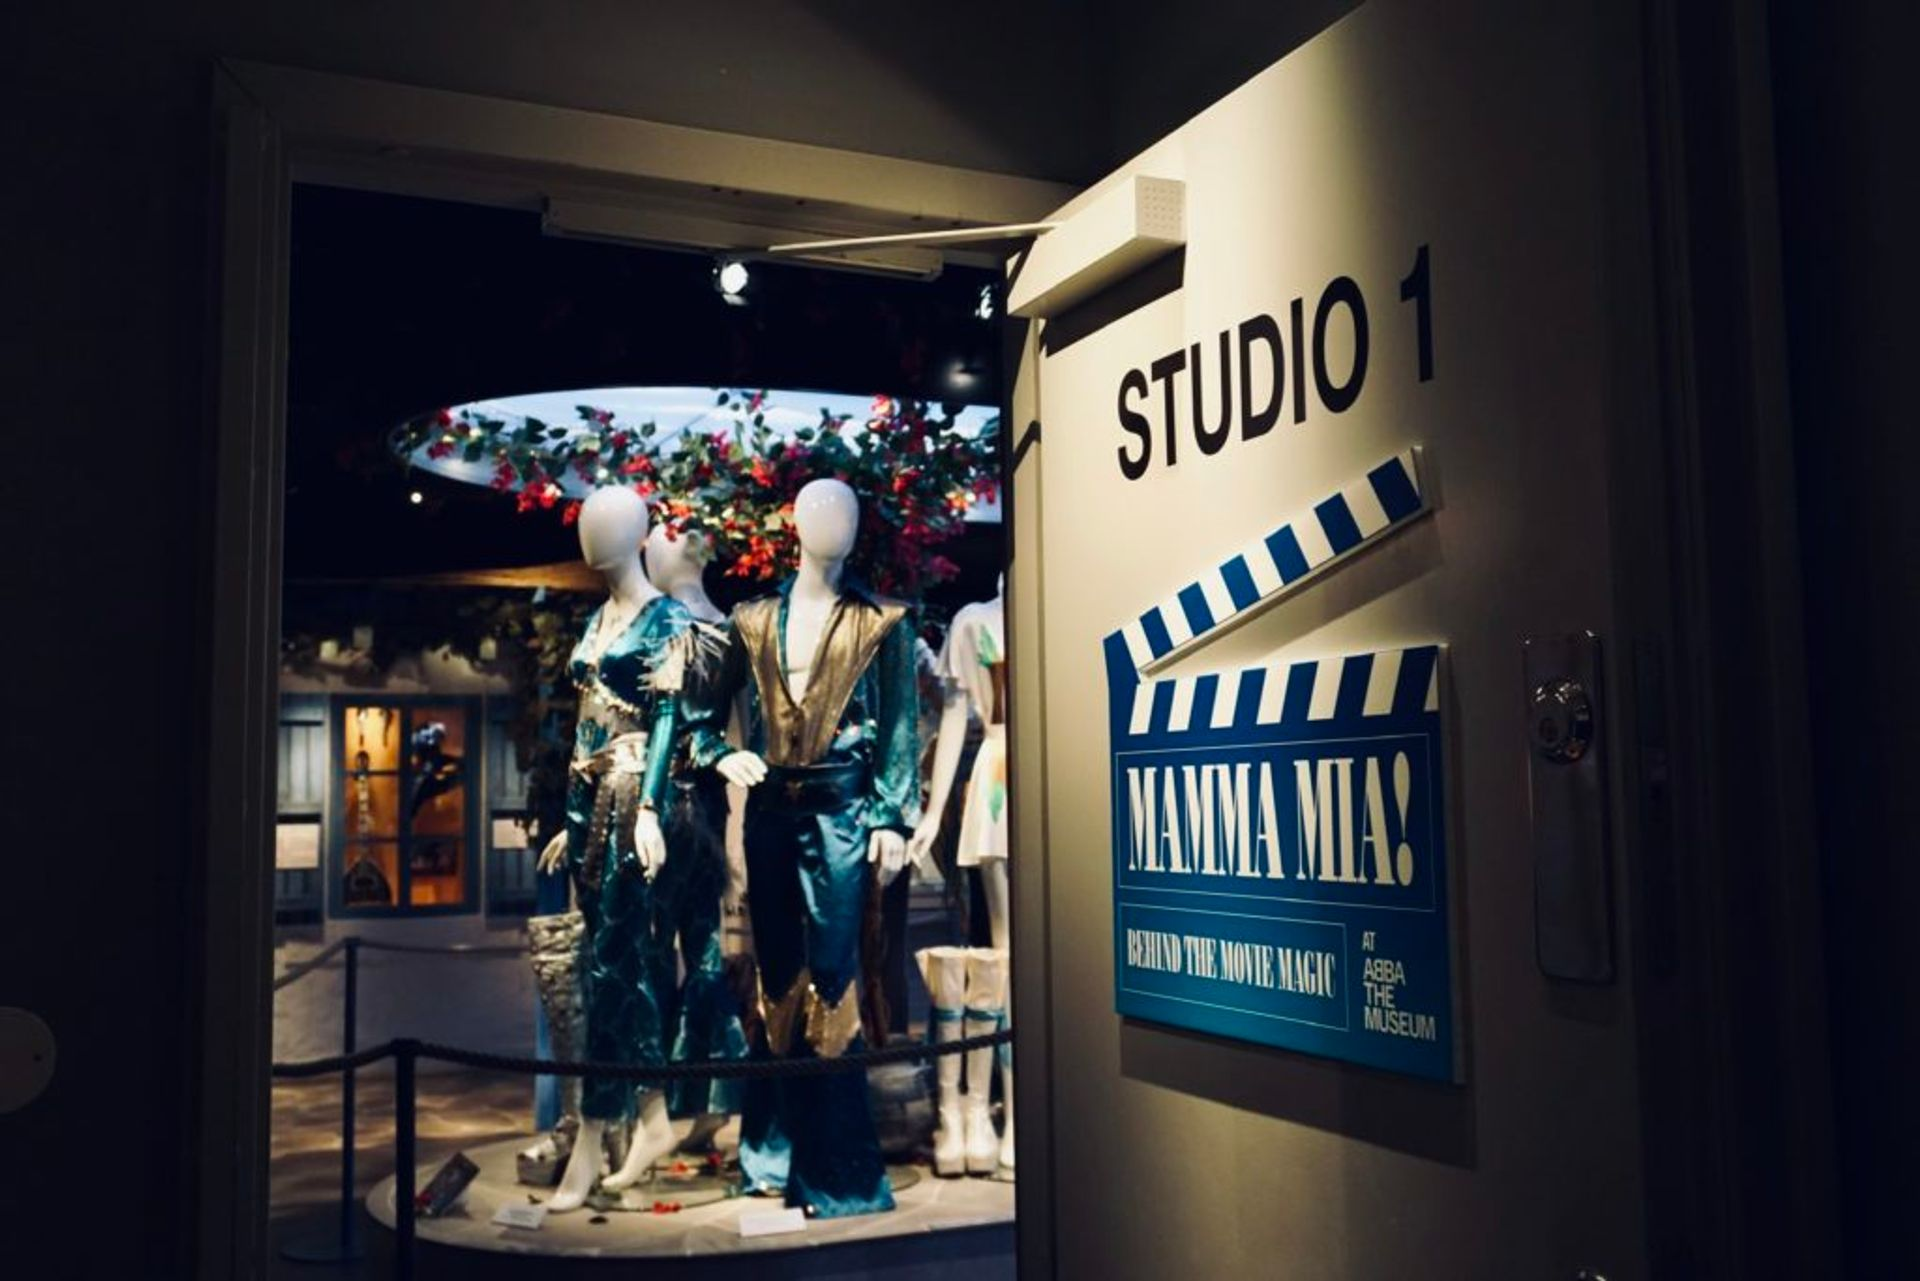 Mannequins dressed in Abba costumes at an exhibition.